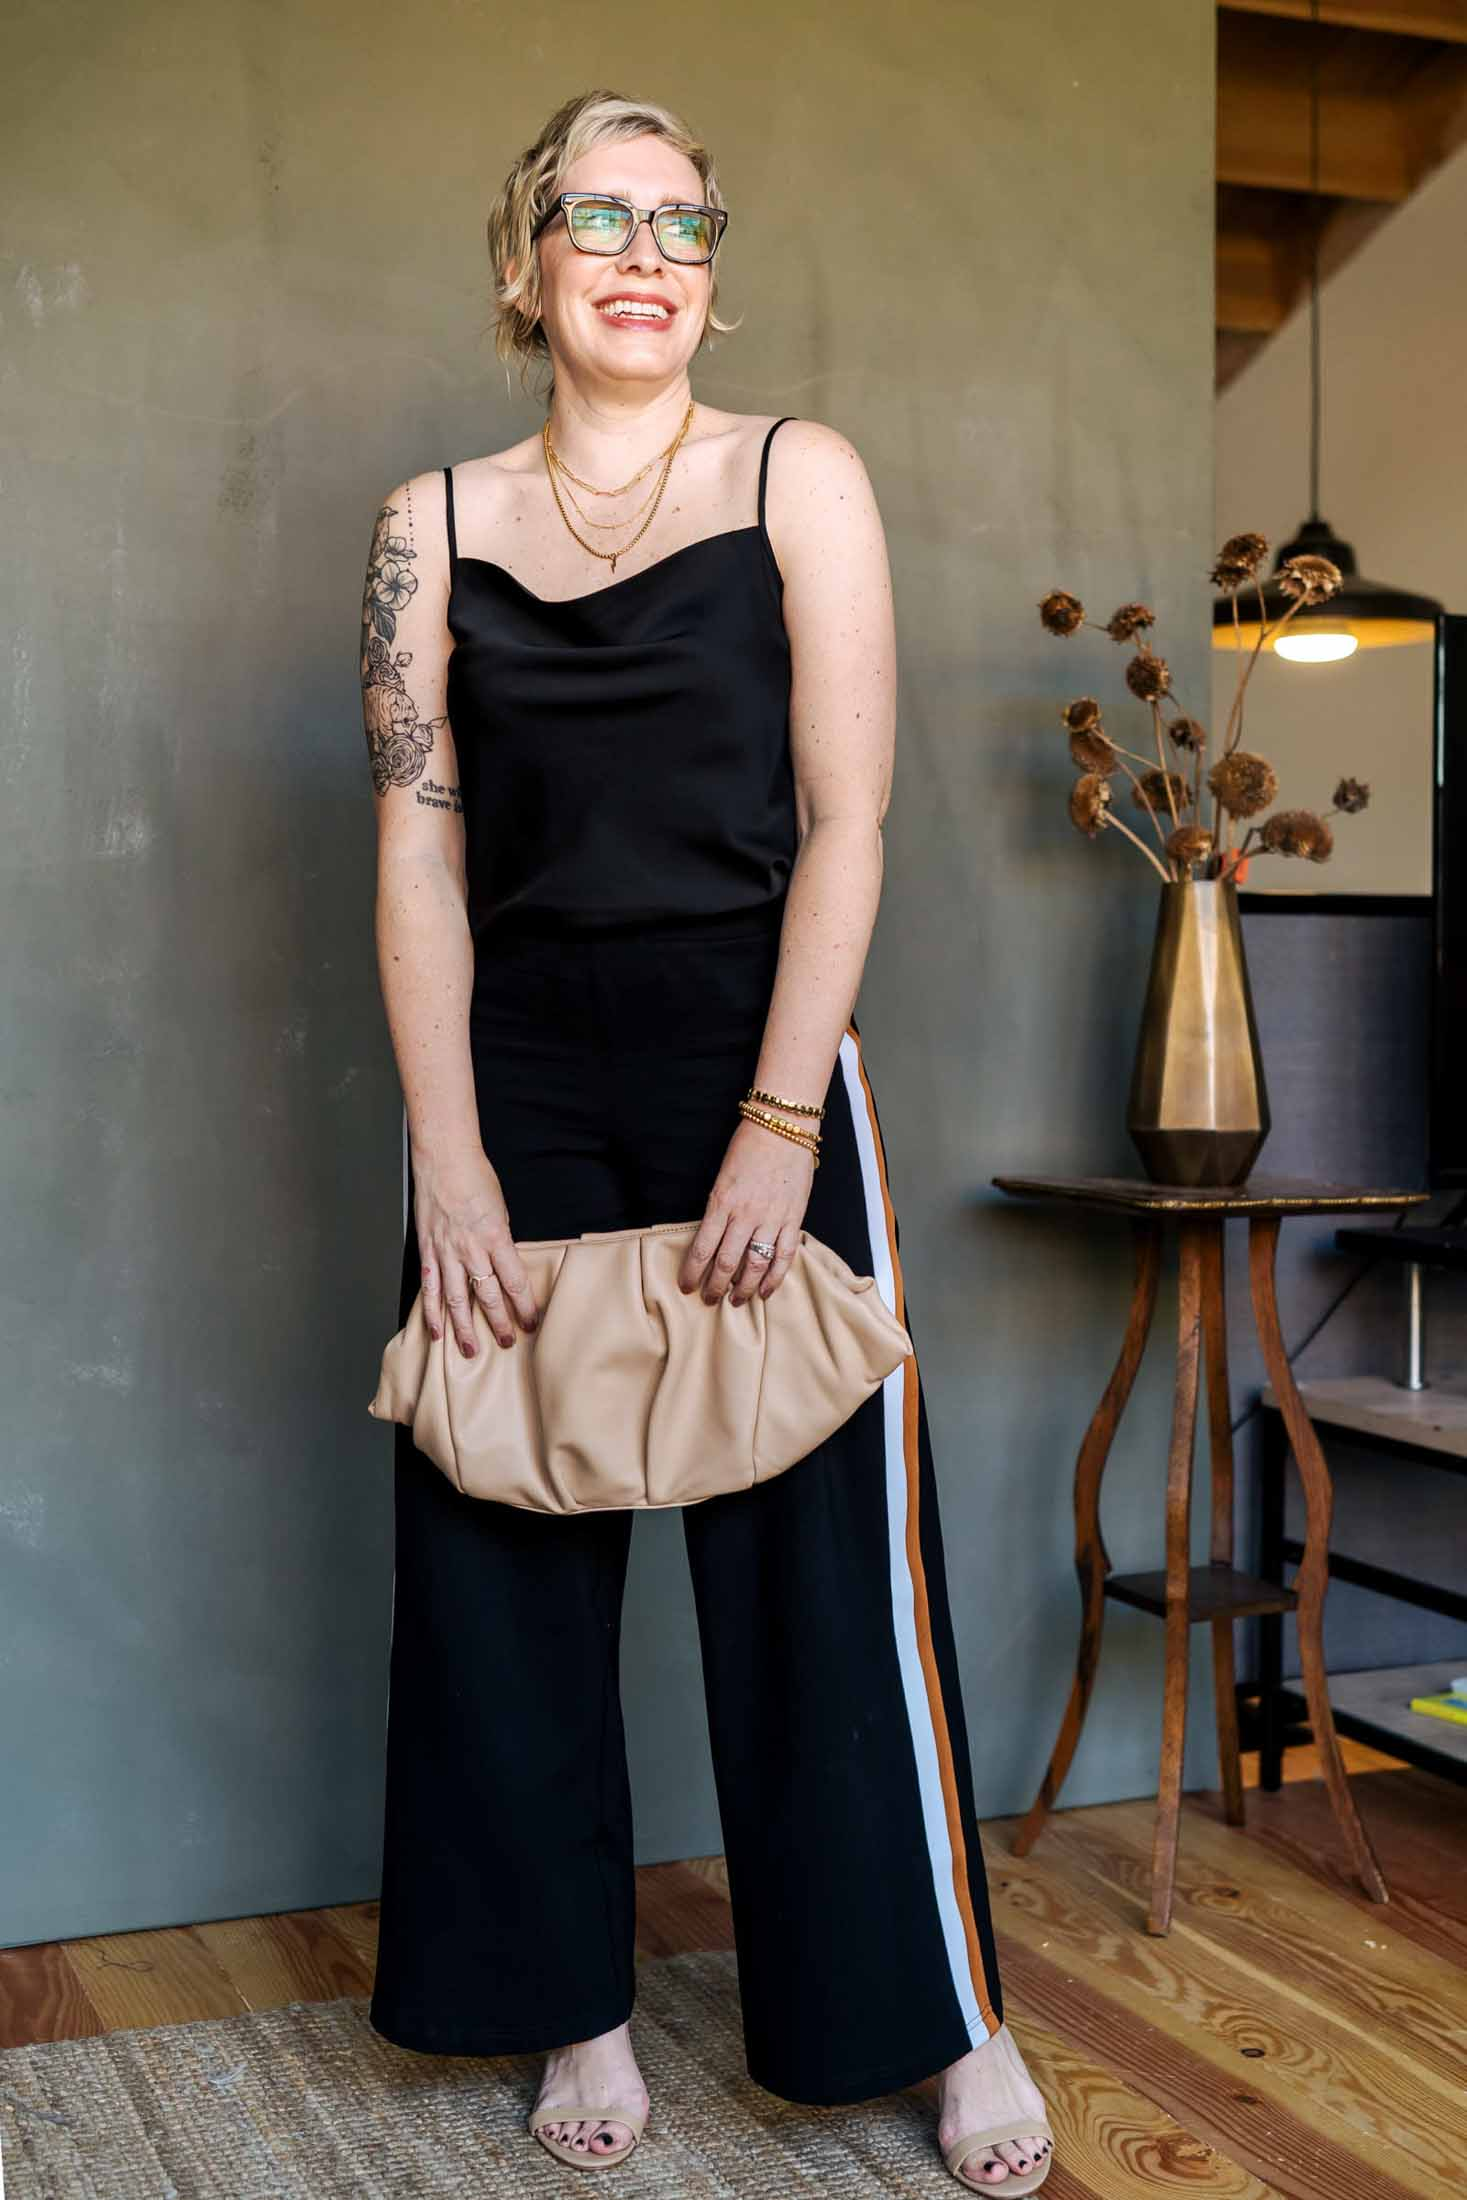 These wide-leg, track-style pants are comfy + work-appropriate. High-waisted ponte knit AND they come in sizes 00 - 40. I mean, what more can we ask for?